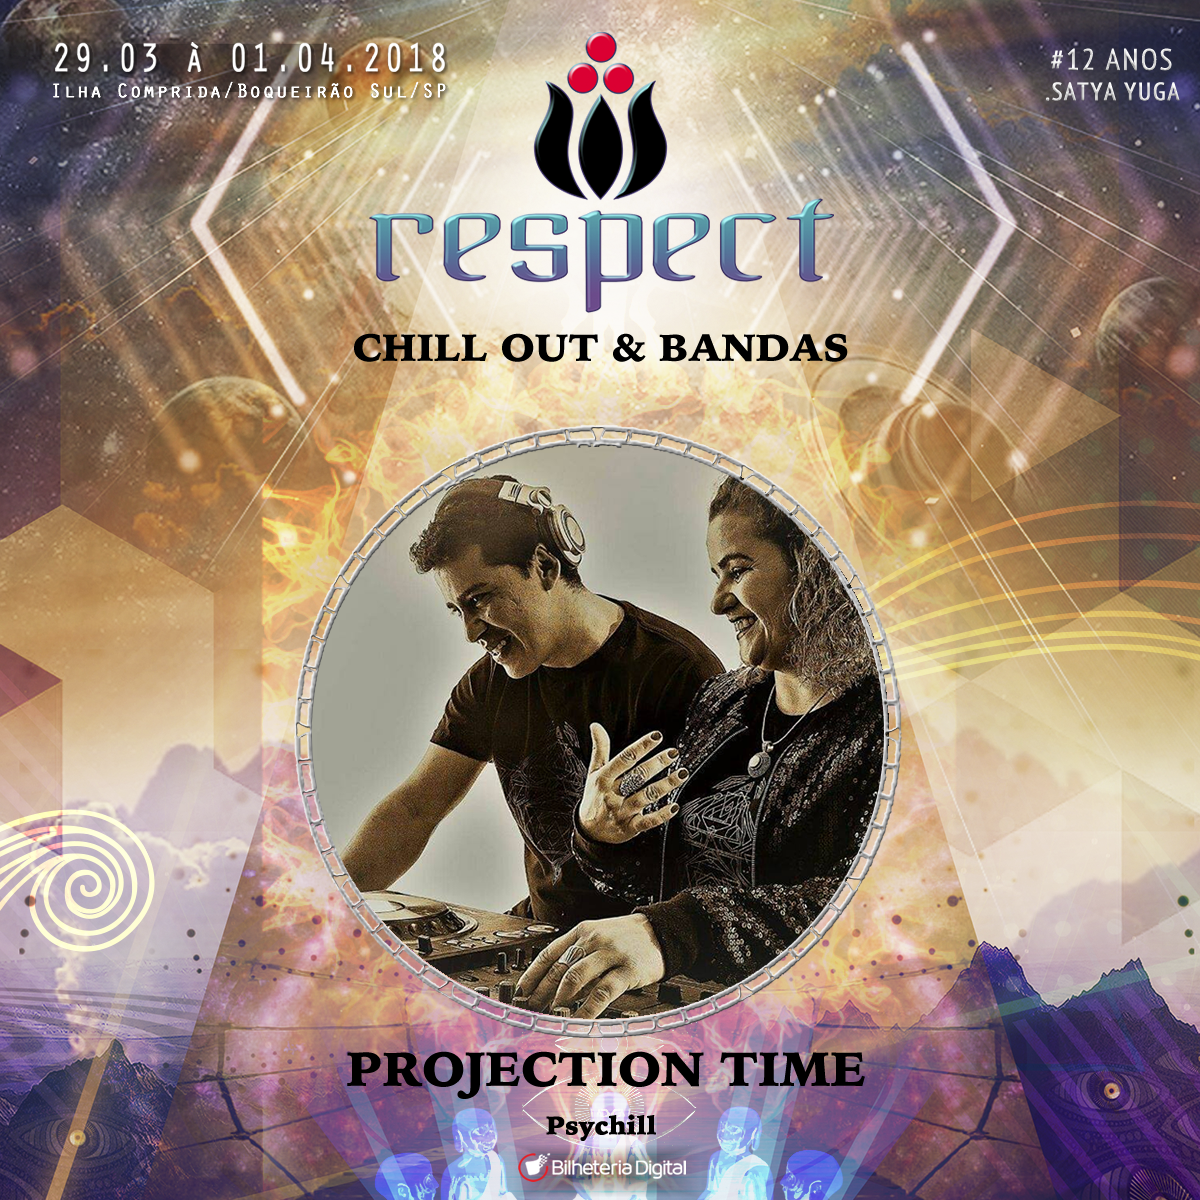 Projection time @ Artista Confirmado Respect Festival 2018